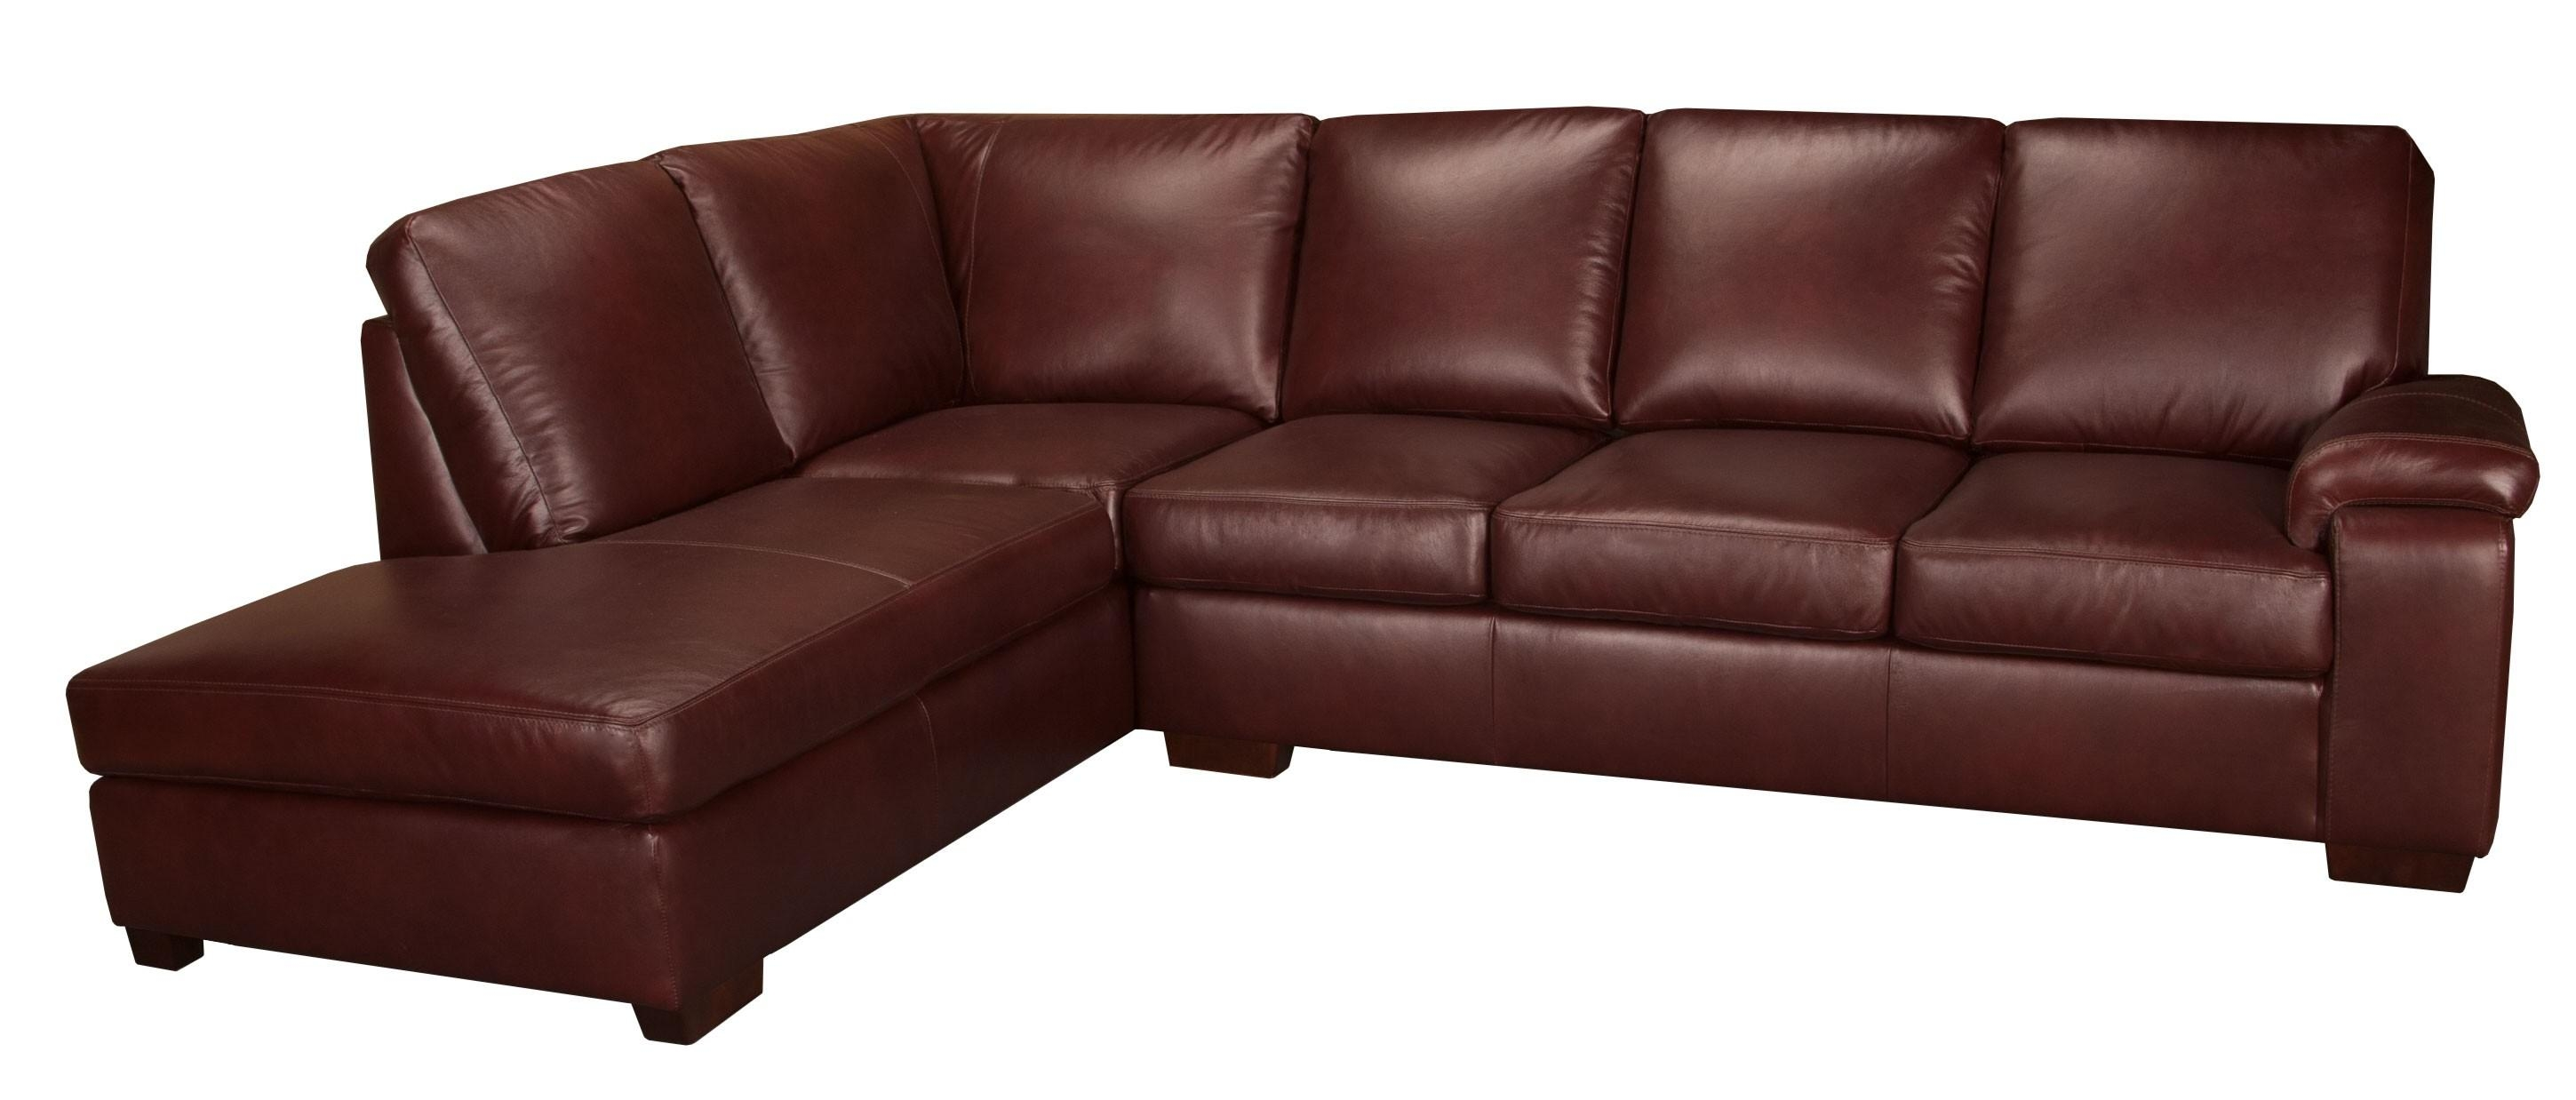 Toronto Sofa 20 43 Choices Of Leather Sectional Sofas Toronto Sofa Ideas